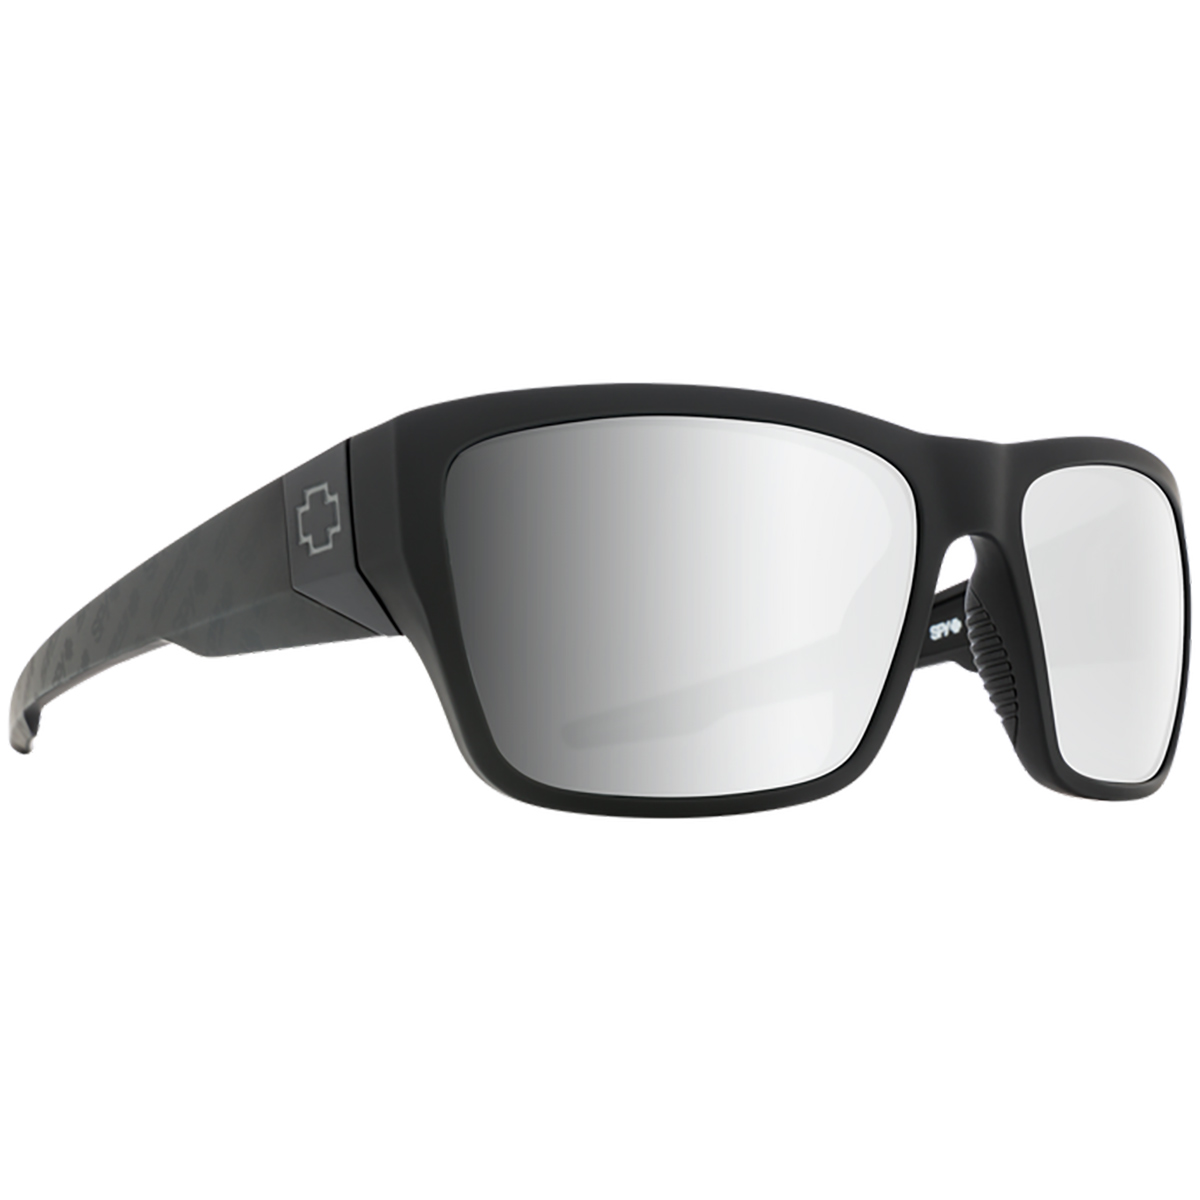 SPY SUNGLASSES スパイ サングラス DIRTY MO 2 ダーティー モー MATTE BLACK LOGO FADE-HD PLUS GRAY GREEN WITH SILVER SPECTRA MIRROR 6700000000019